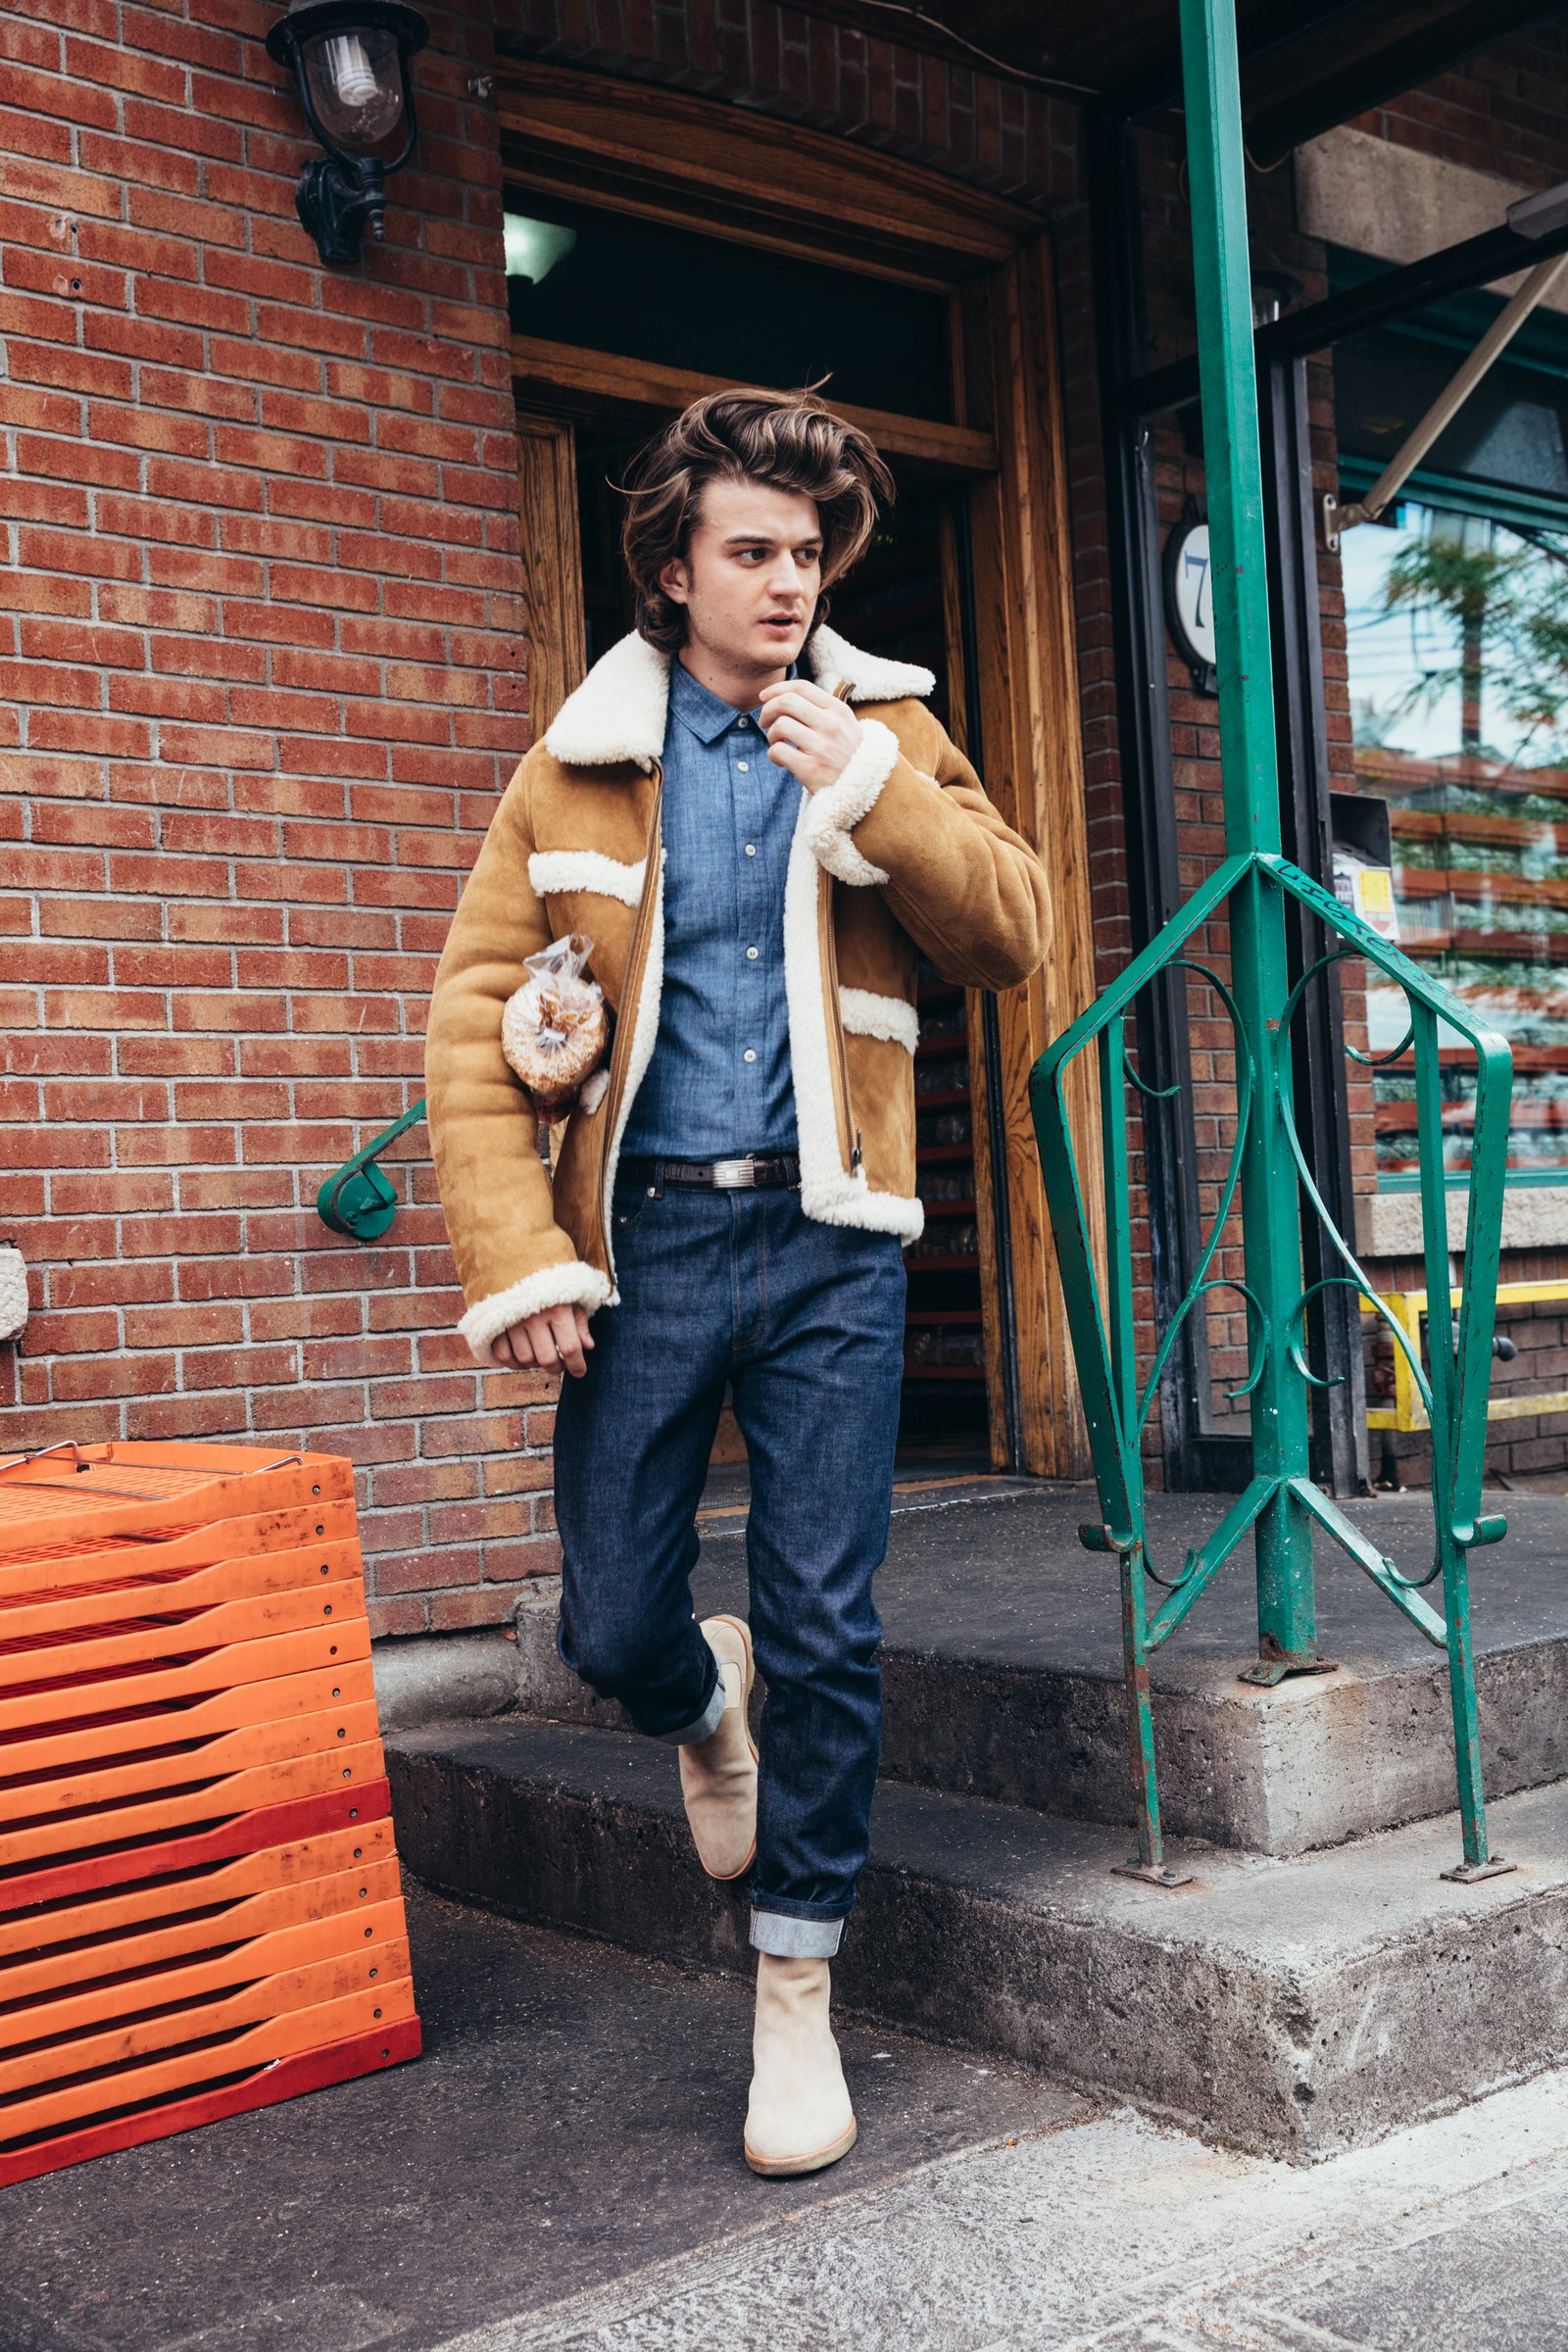 joekeery-ao long cuu-elle man-1119-GQ